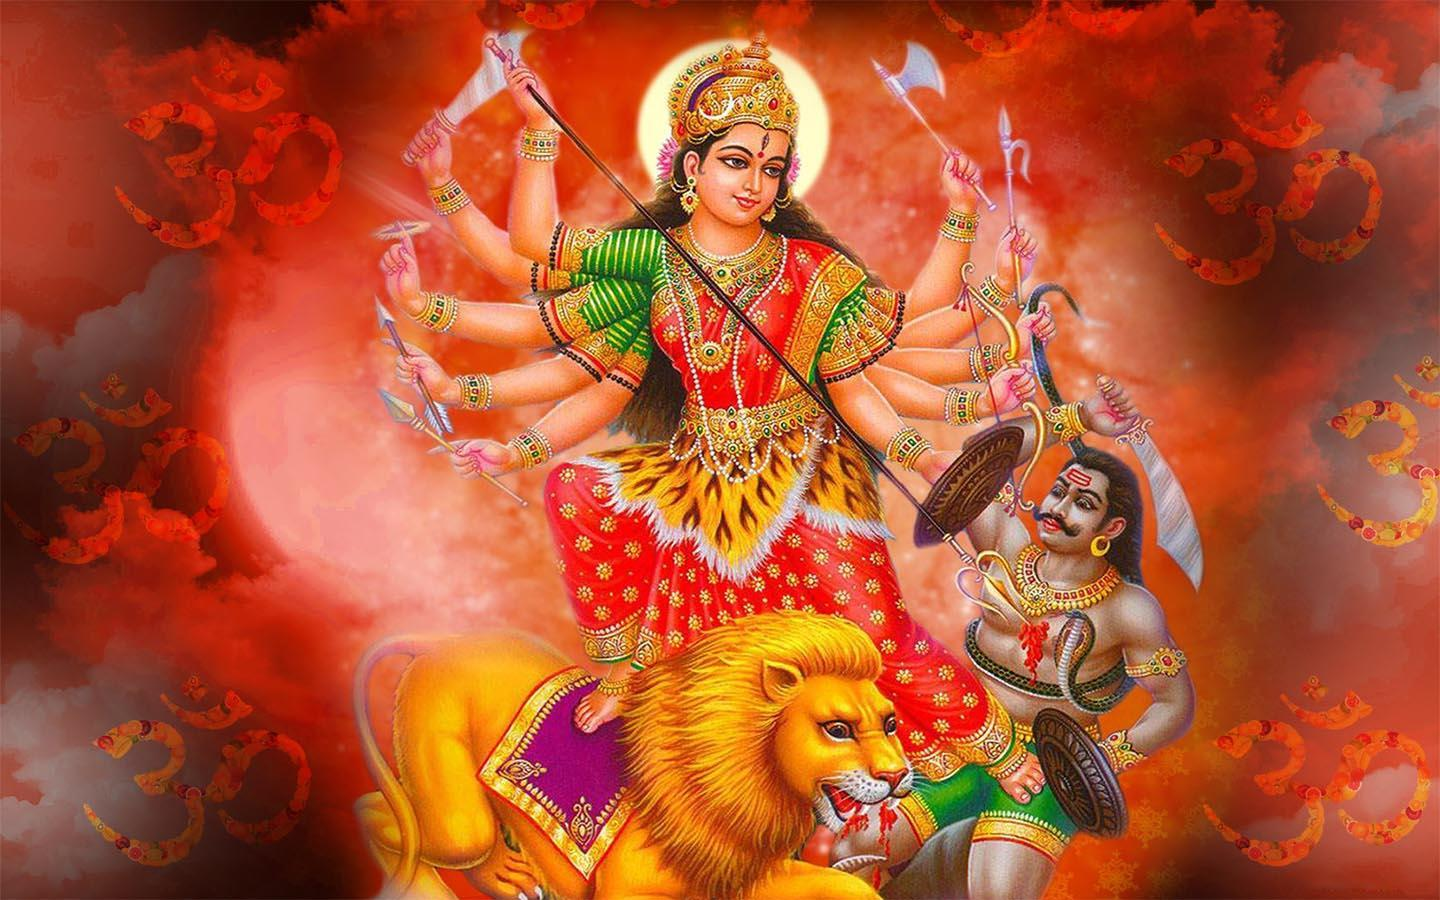 Download Maa Durga Wallpaper High Quality Gallery